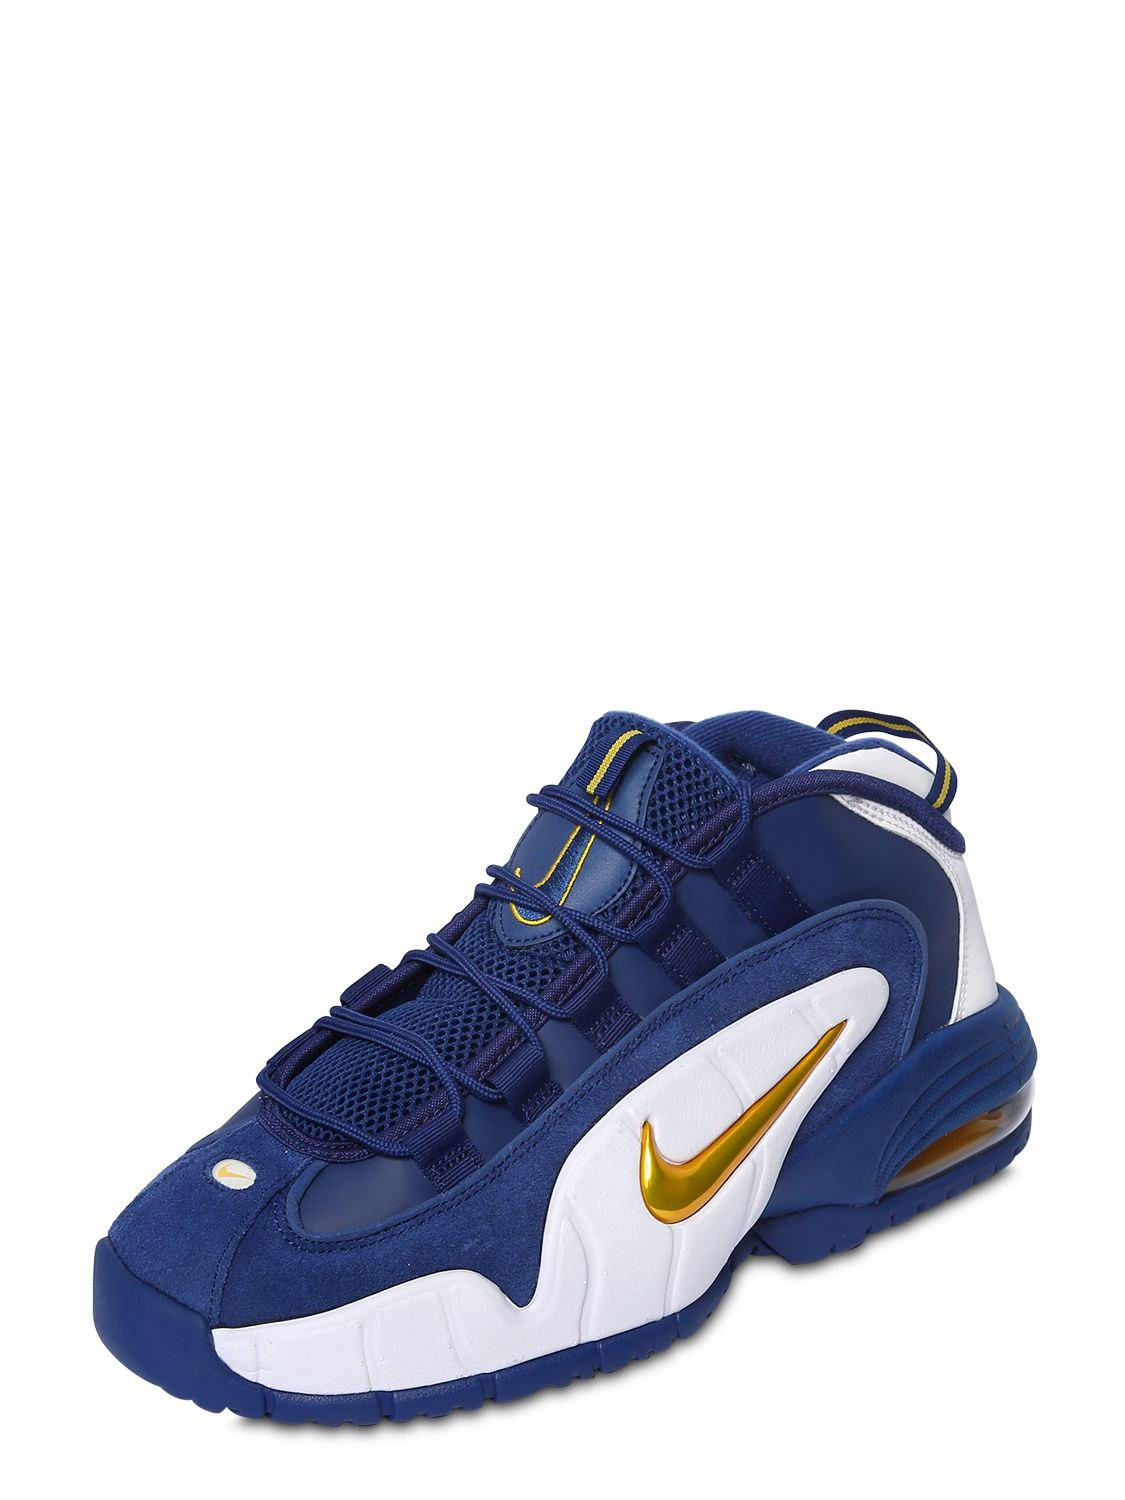 88aecd9b712a Lyst - Nike Air Max Penny Sneakers in Blue for Men